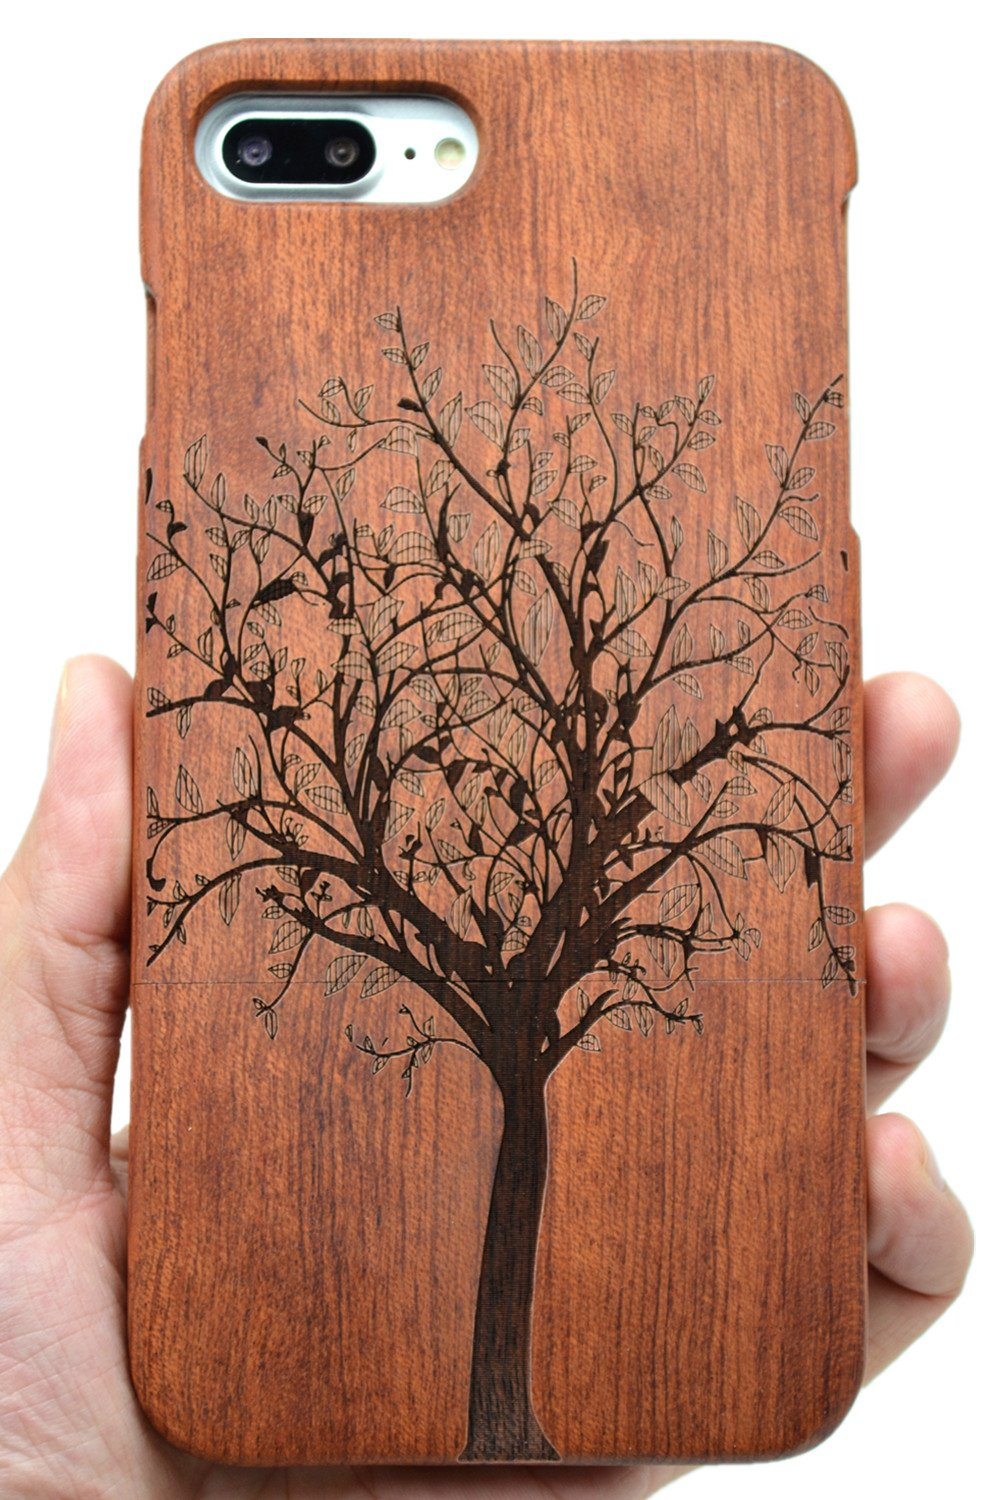 PhantomSky Stylish Carved Pattern Wooden Case for iPhone 7 / iPhone 8, Premium Quality Handmade Natural Wood Hard Case Non-Slip Shockproof Design Protective Cover - Rosewood Christmas Tree by PhantomSky